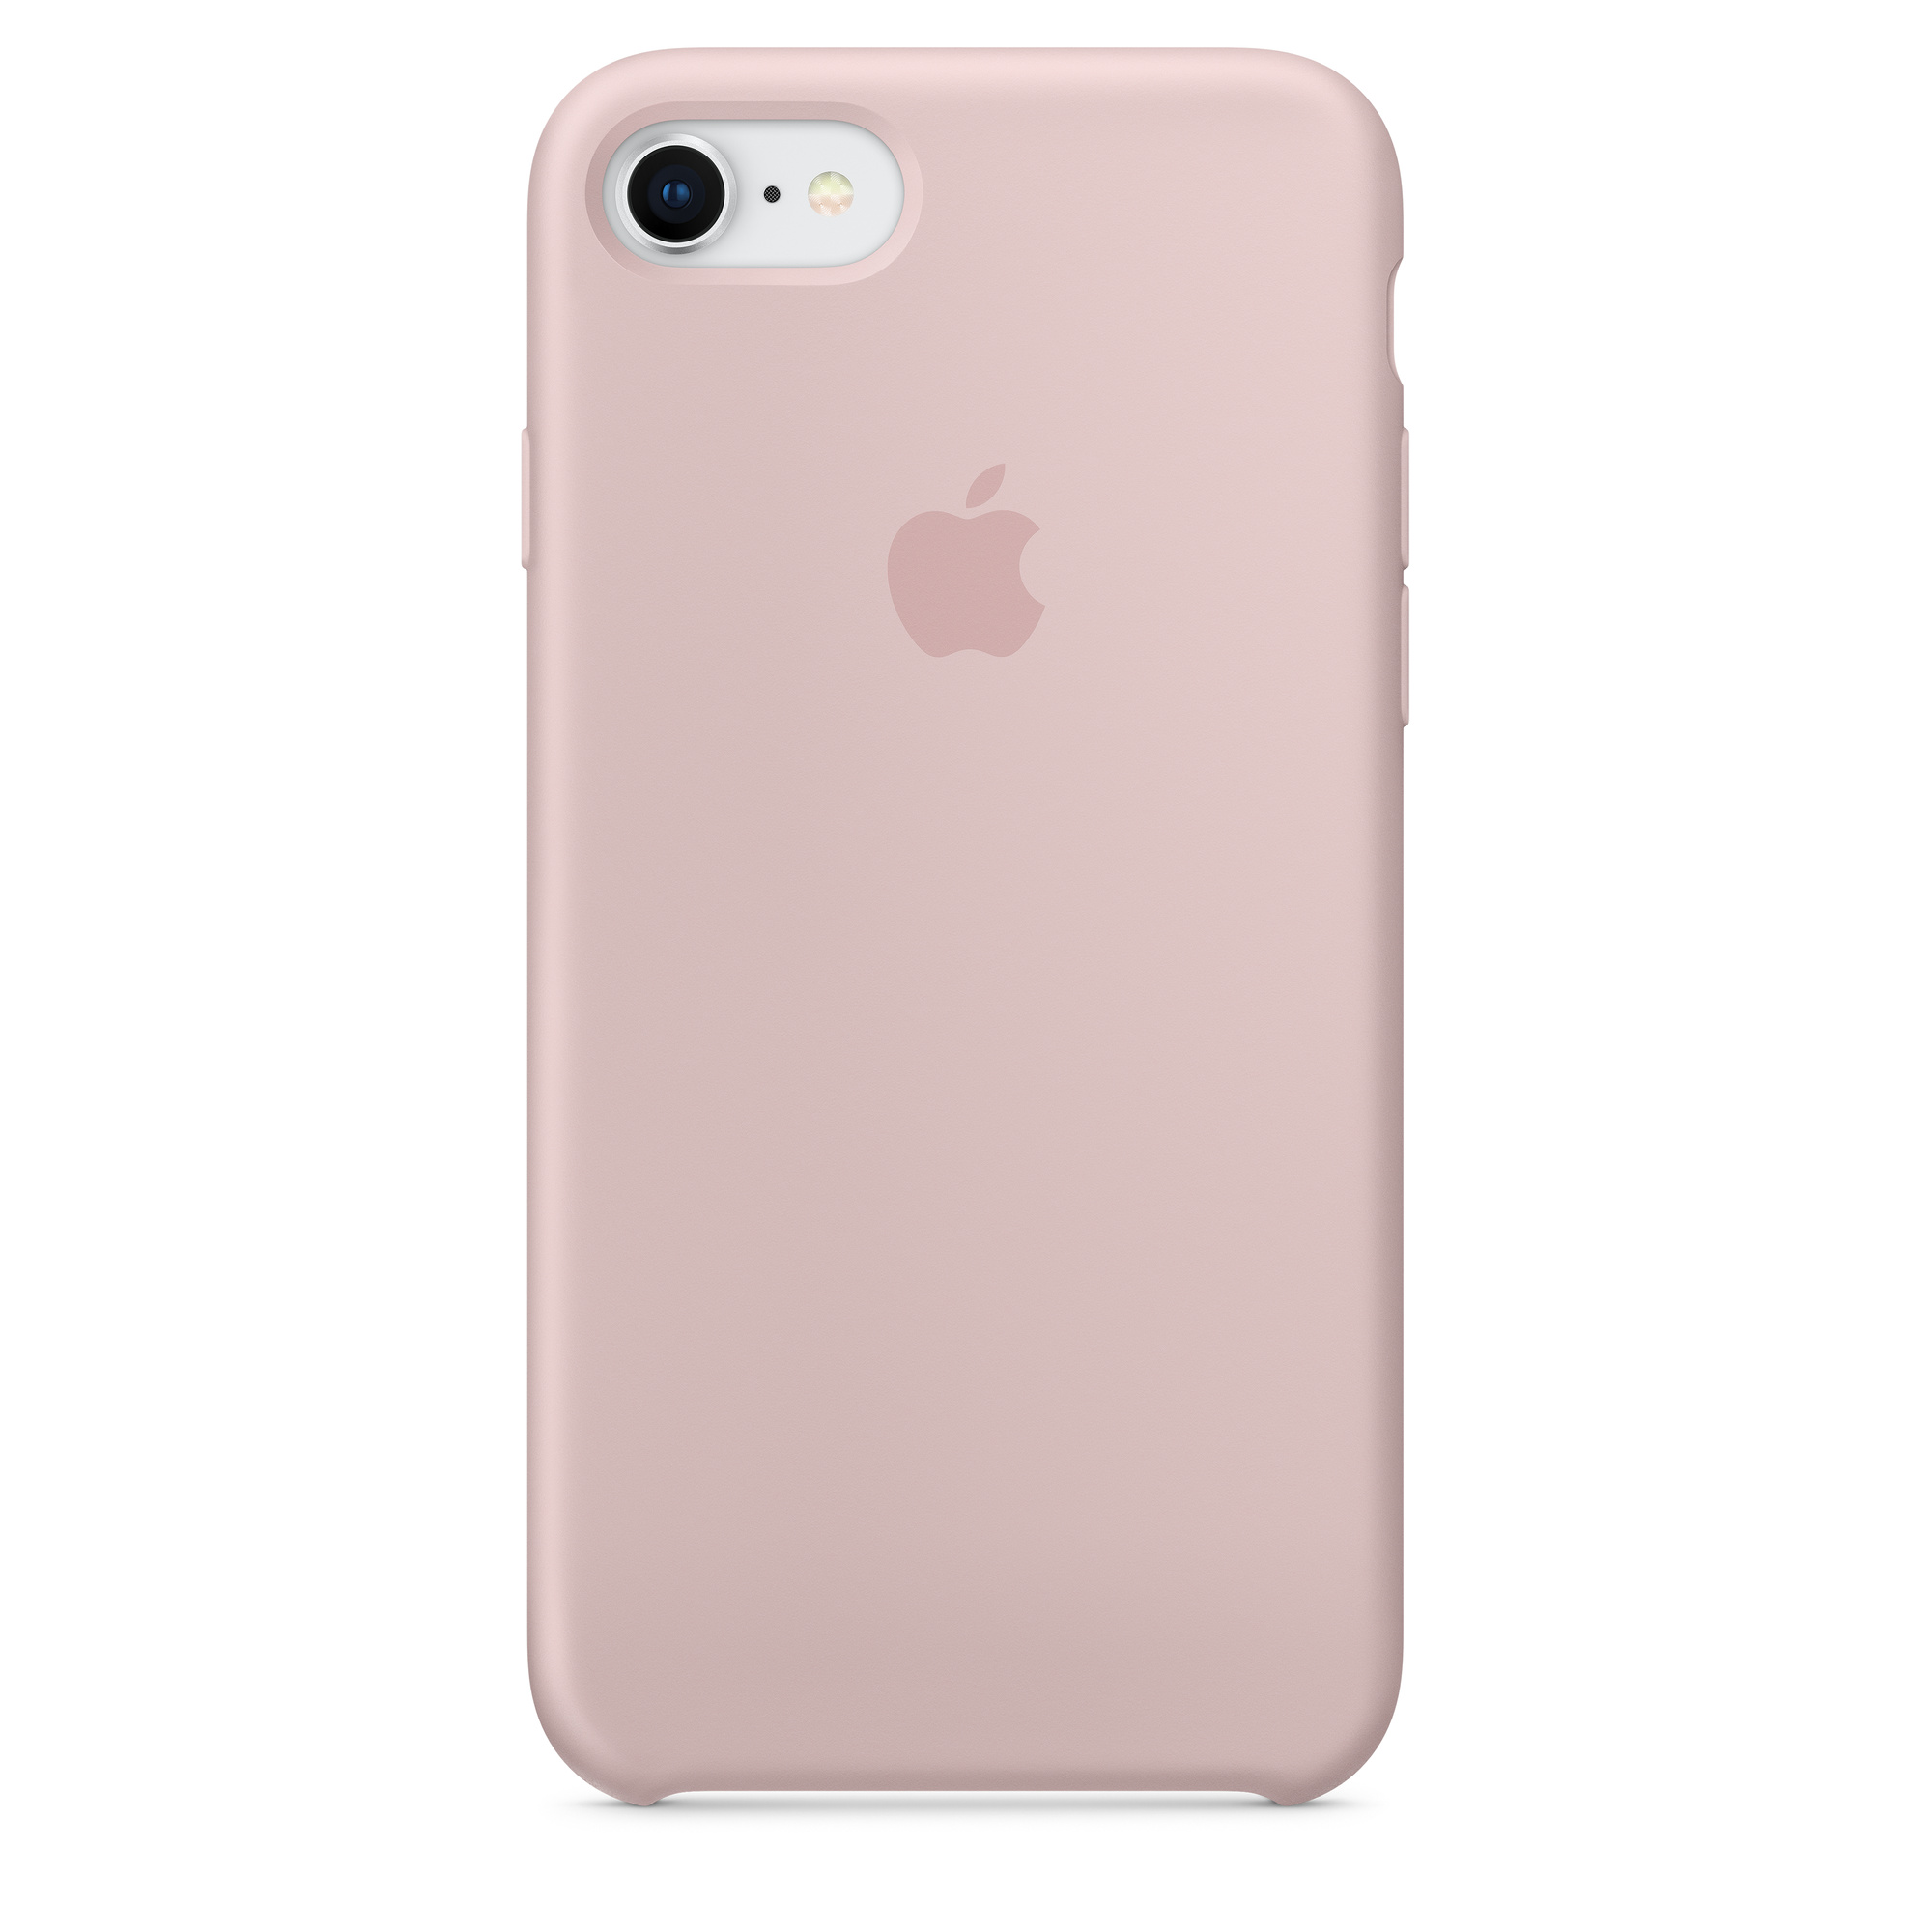 reputable site f0521 42408 iPhone 8 / 7 Silicone Case - Pink Sand